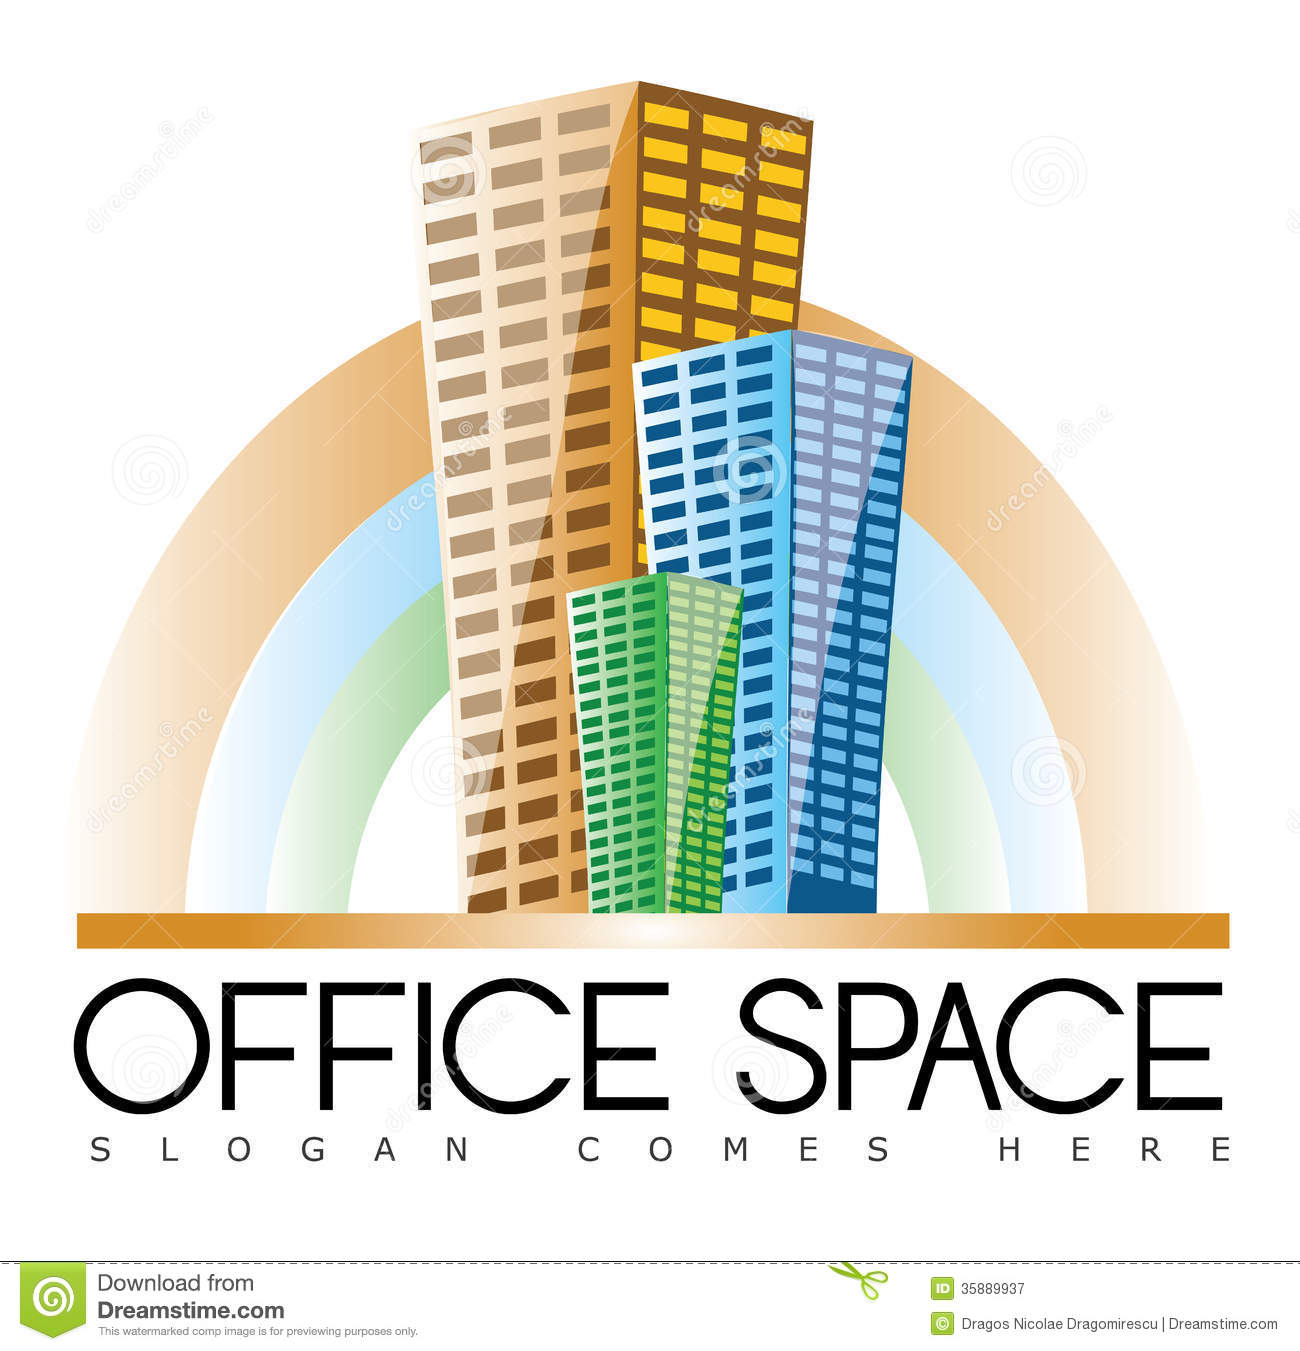 Building logo clipart. Real estate stock photos